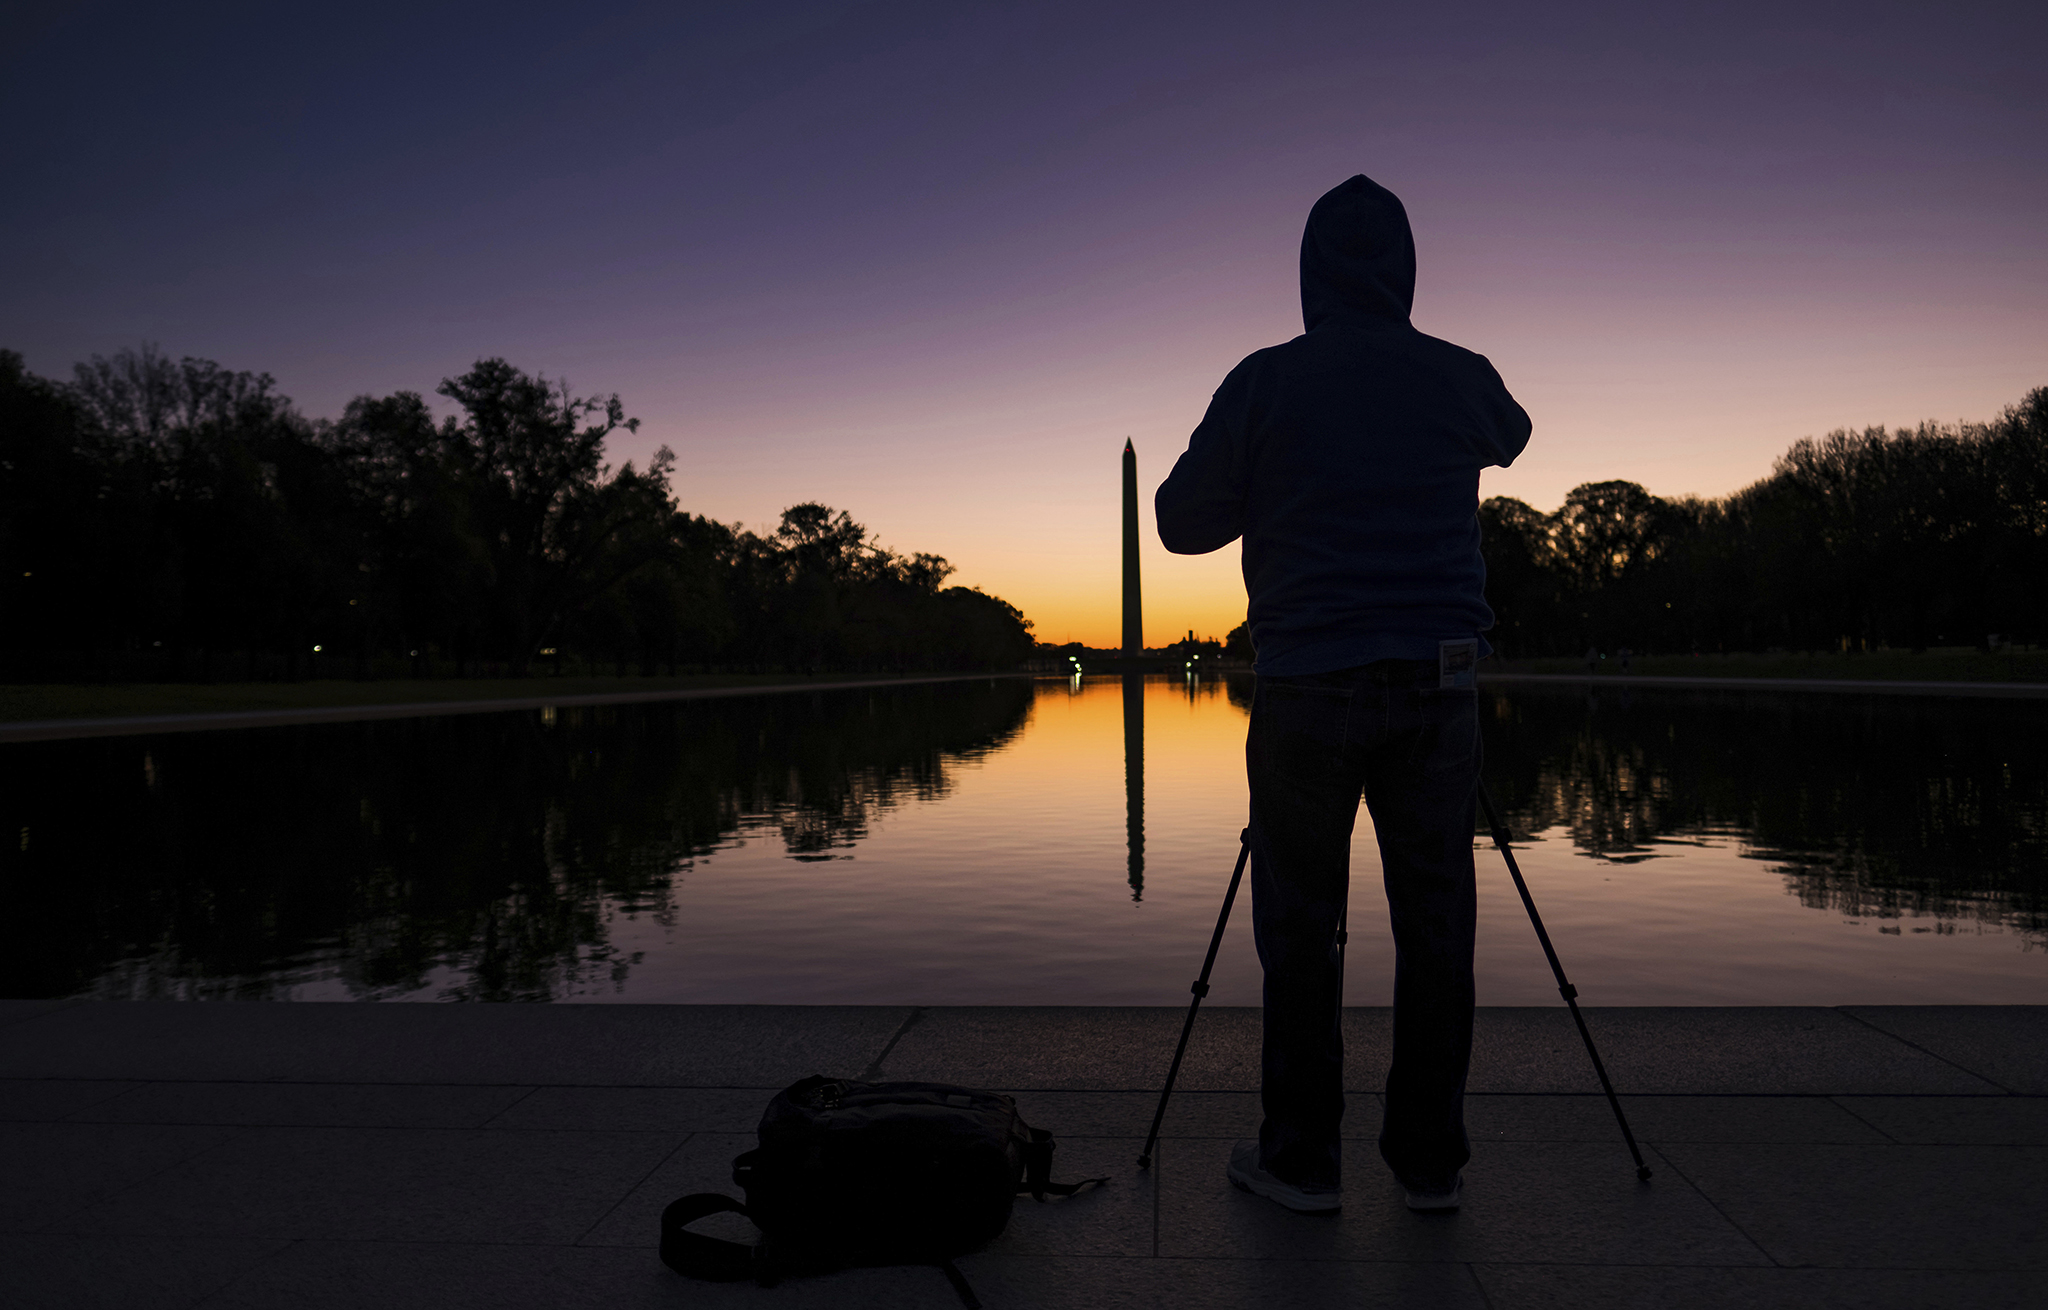 A photographer sets up in front of the Reflecting Pool on the National Mall to capture daybreak behind the Washington Monument, Tuesday, Oct. 25, 2016, in Washington. (AP Photo/J. David Ake)